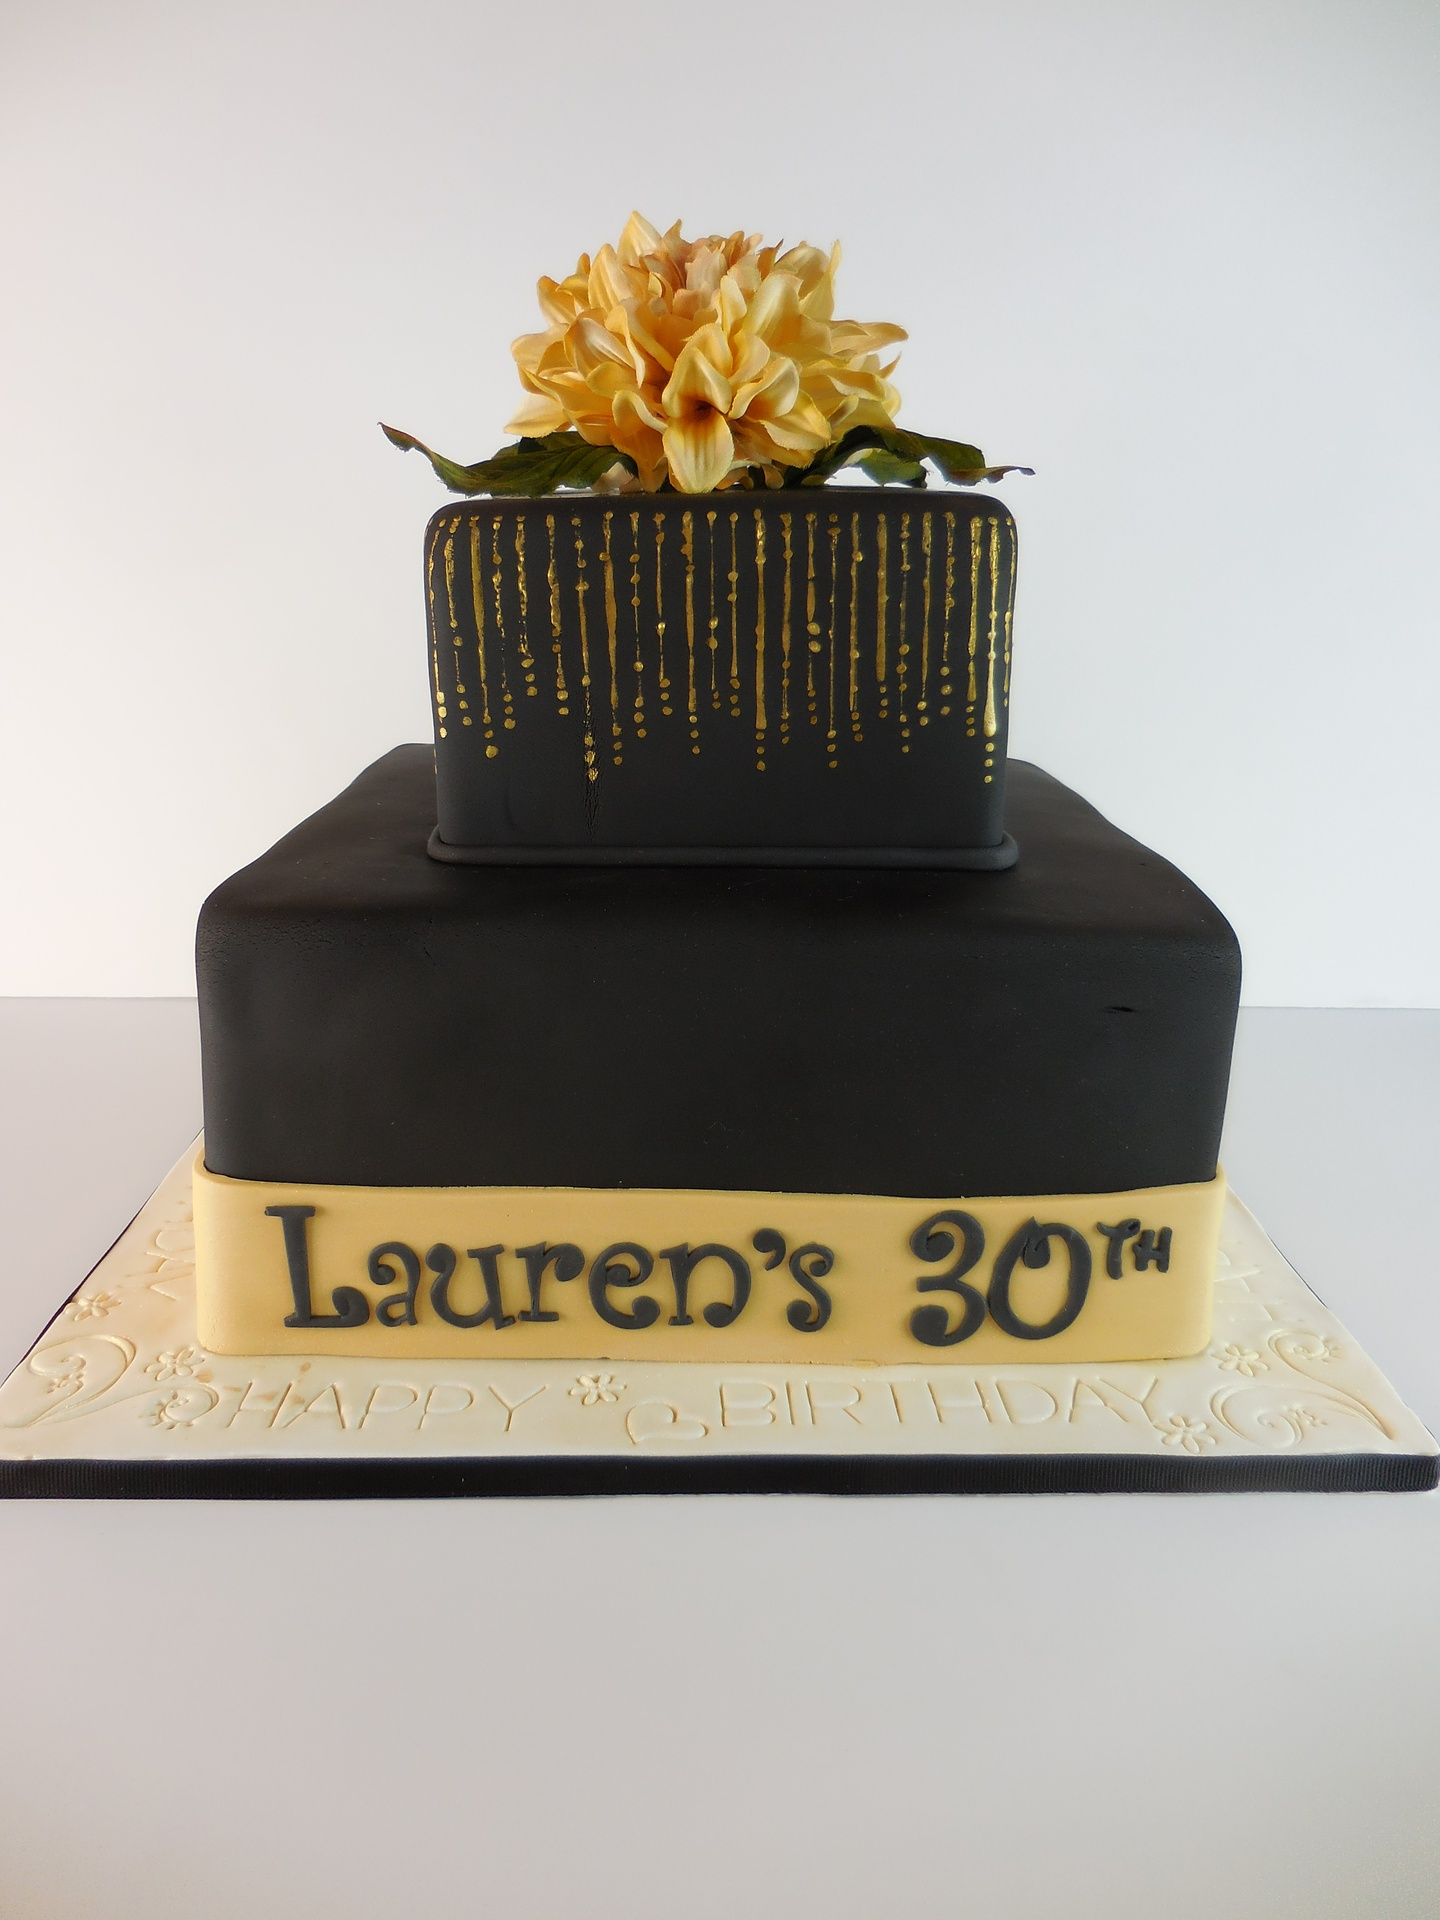 Lauren's 'Roaring Twenties' 30th Birthday